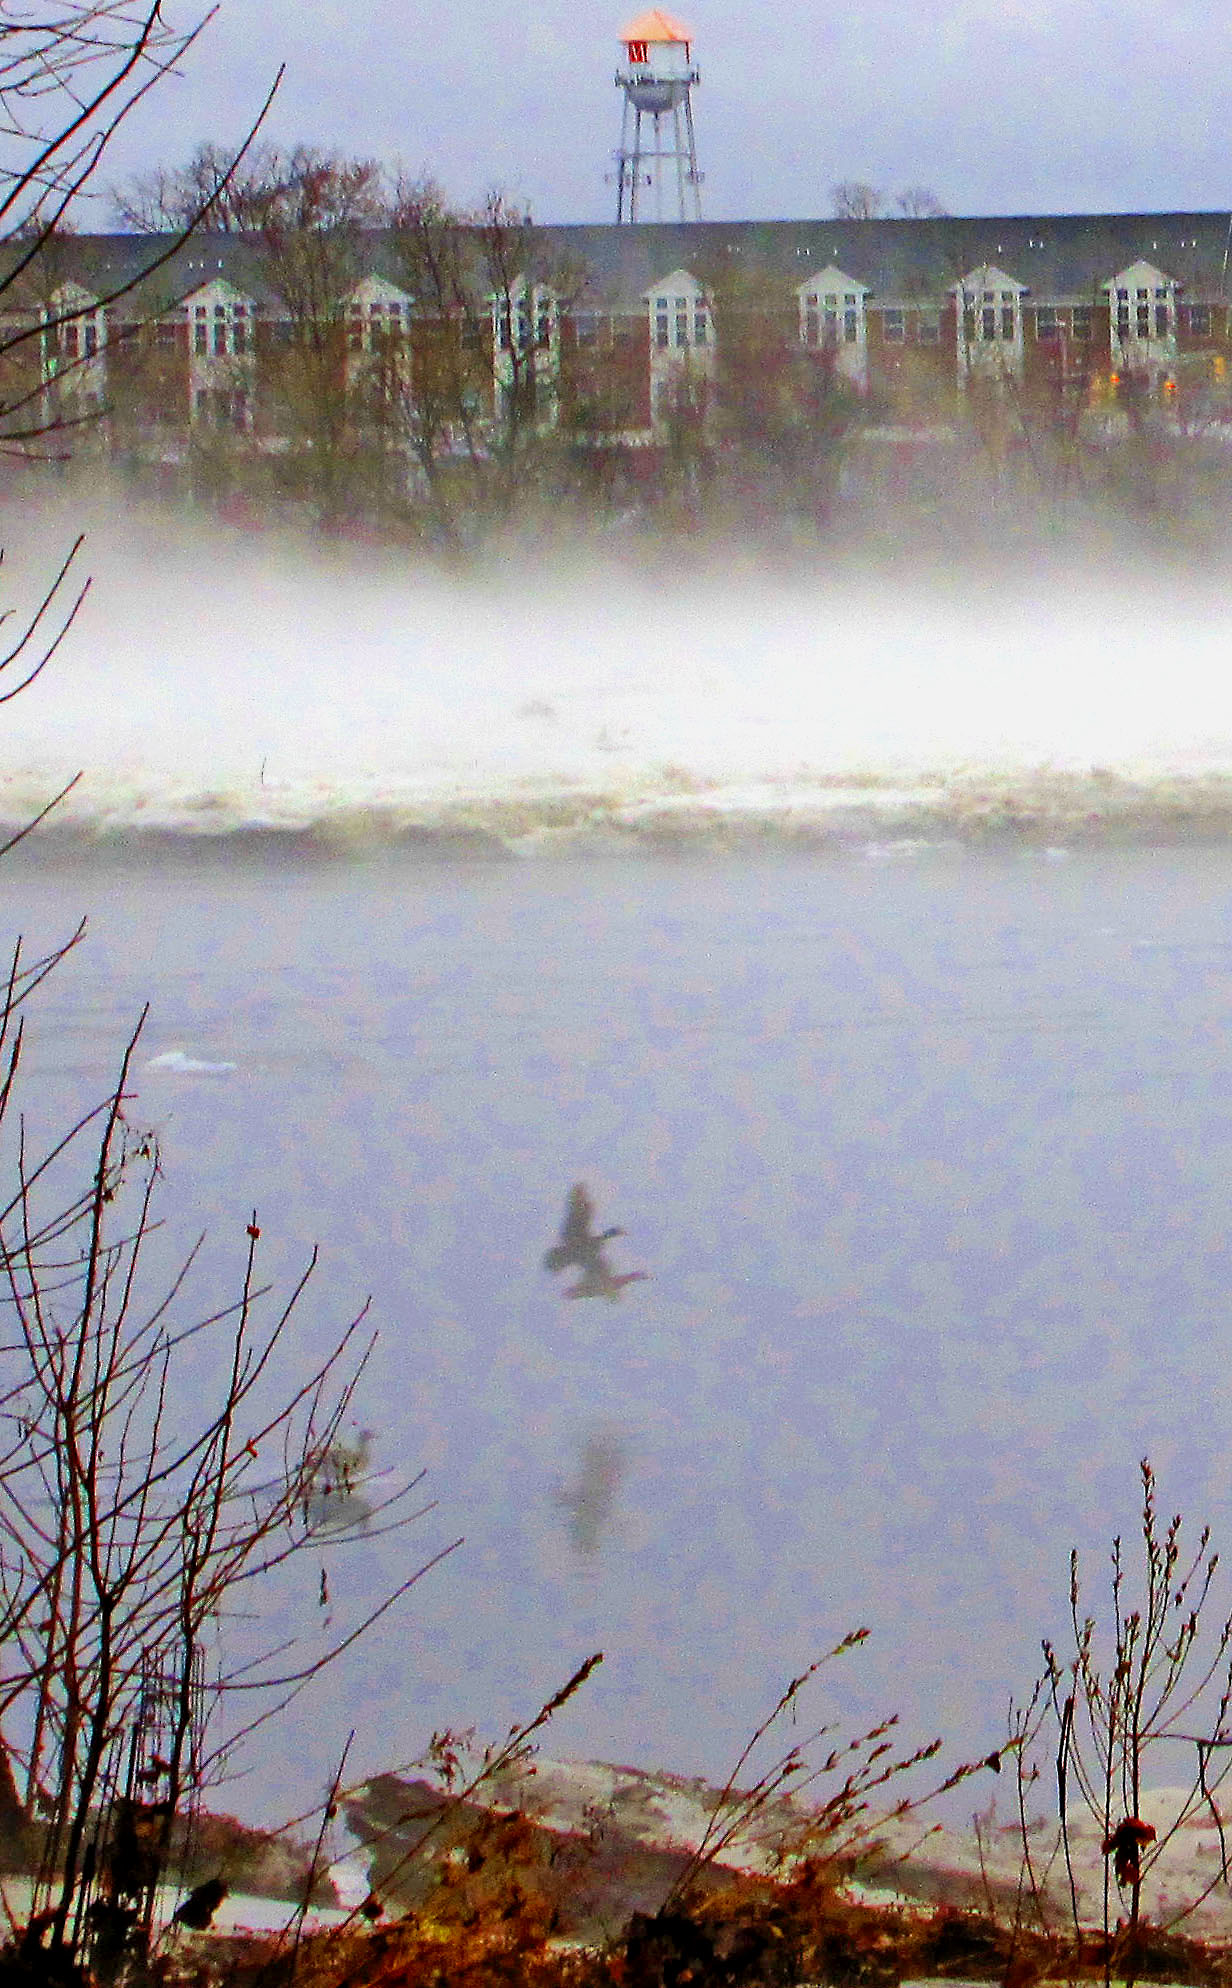 Ghostly Geese Taking Flight Over Ice Jammed River